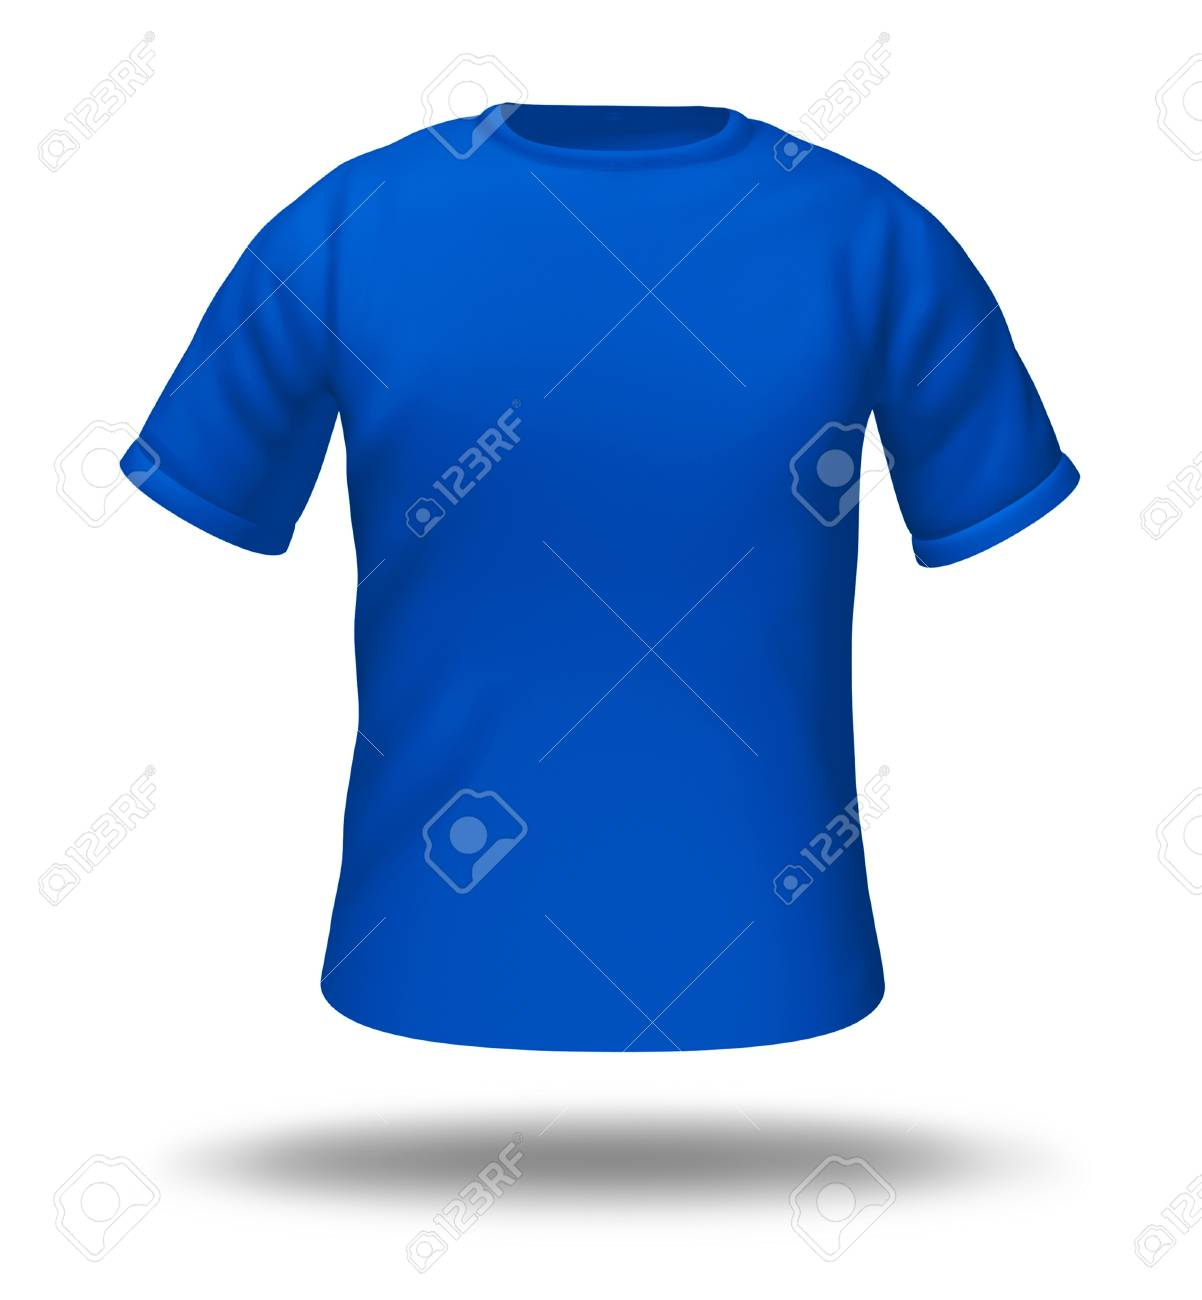 Single Blue T-shirt Isolated With Blank Material For Easy Editing ...